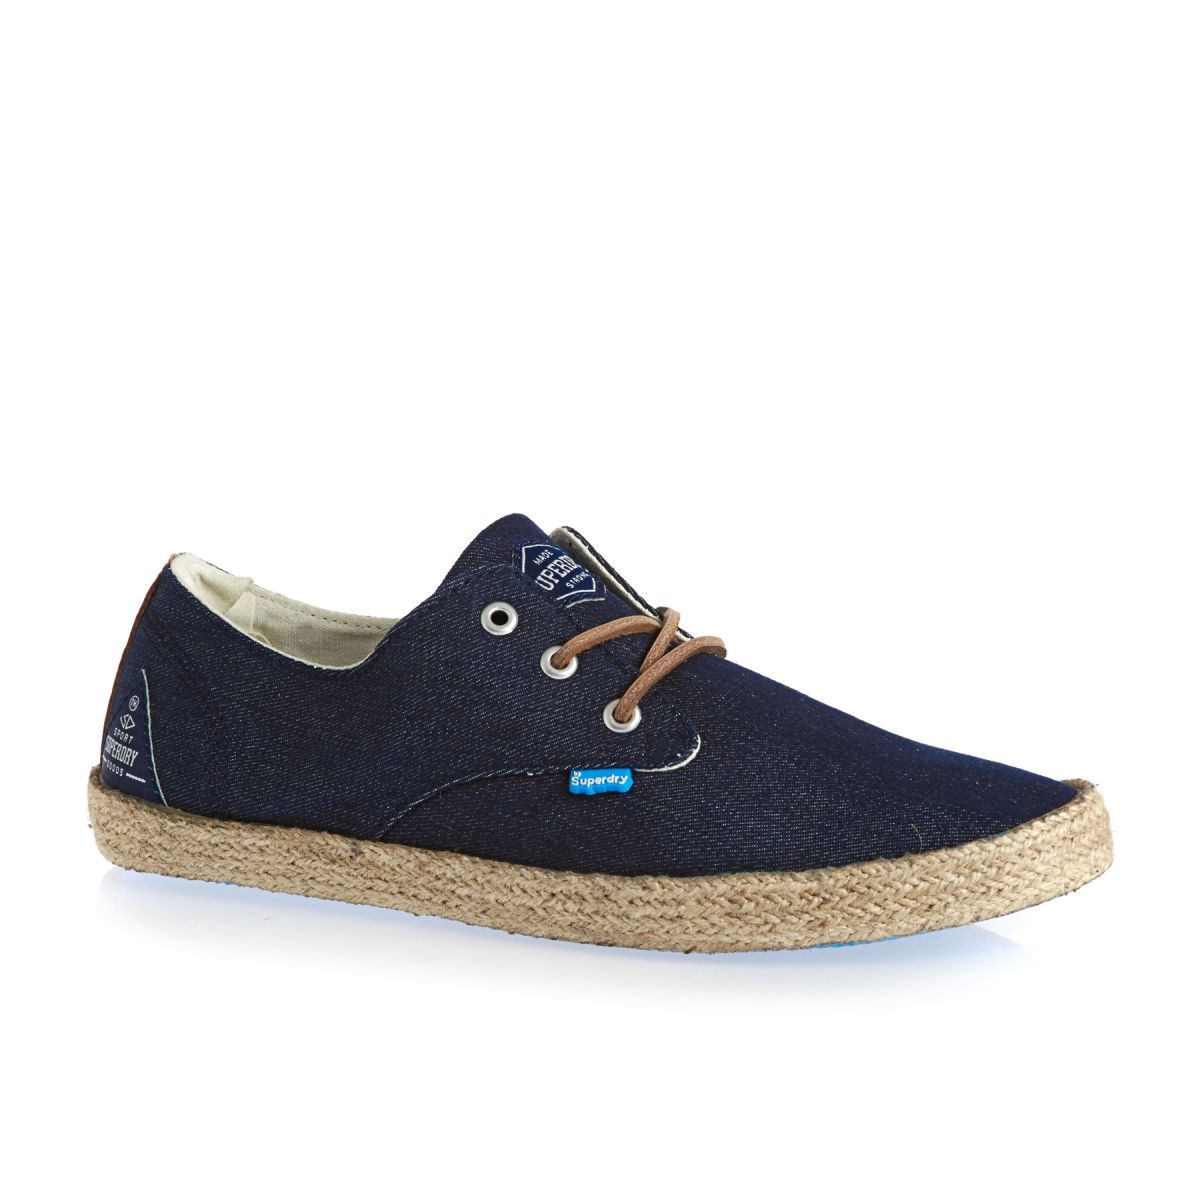 Elephant And Giraffe Men's Fashion Loafer Athletic Quick Drying Slip-On Sneaker Shoes